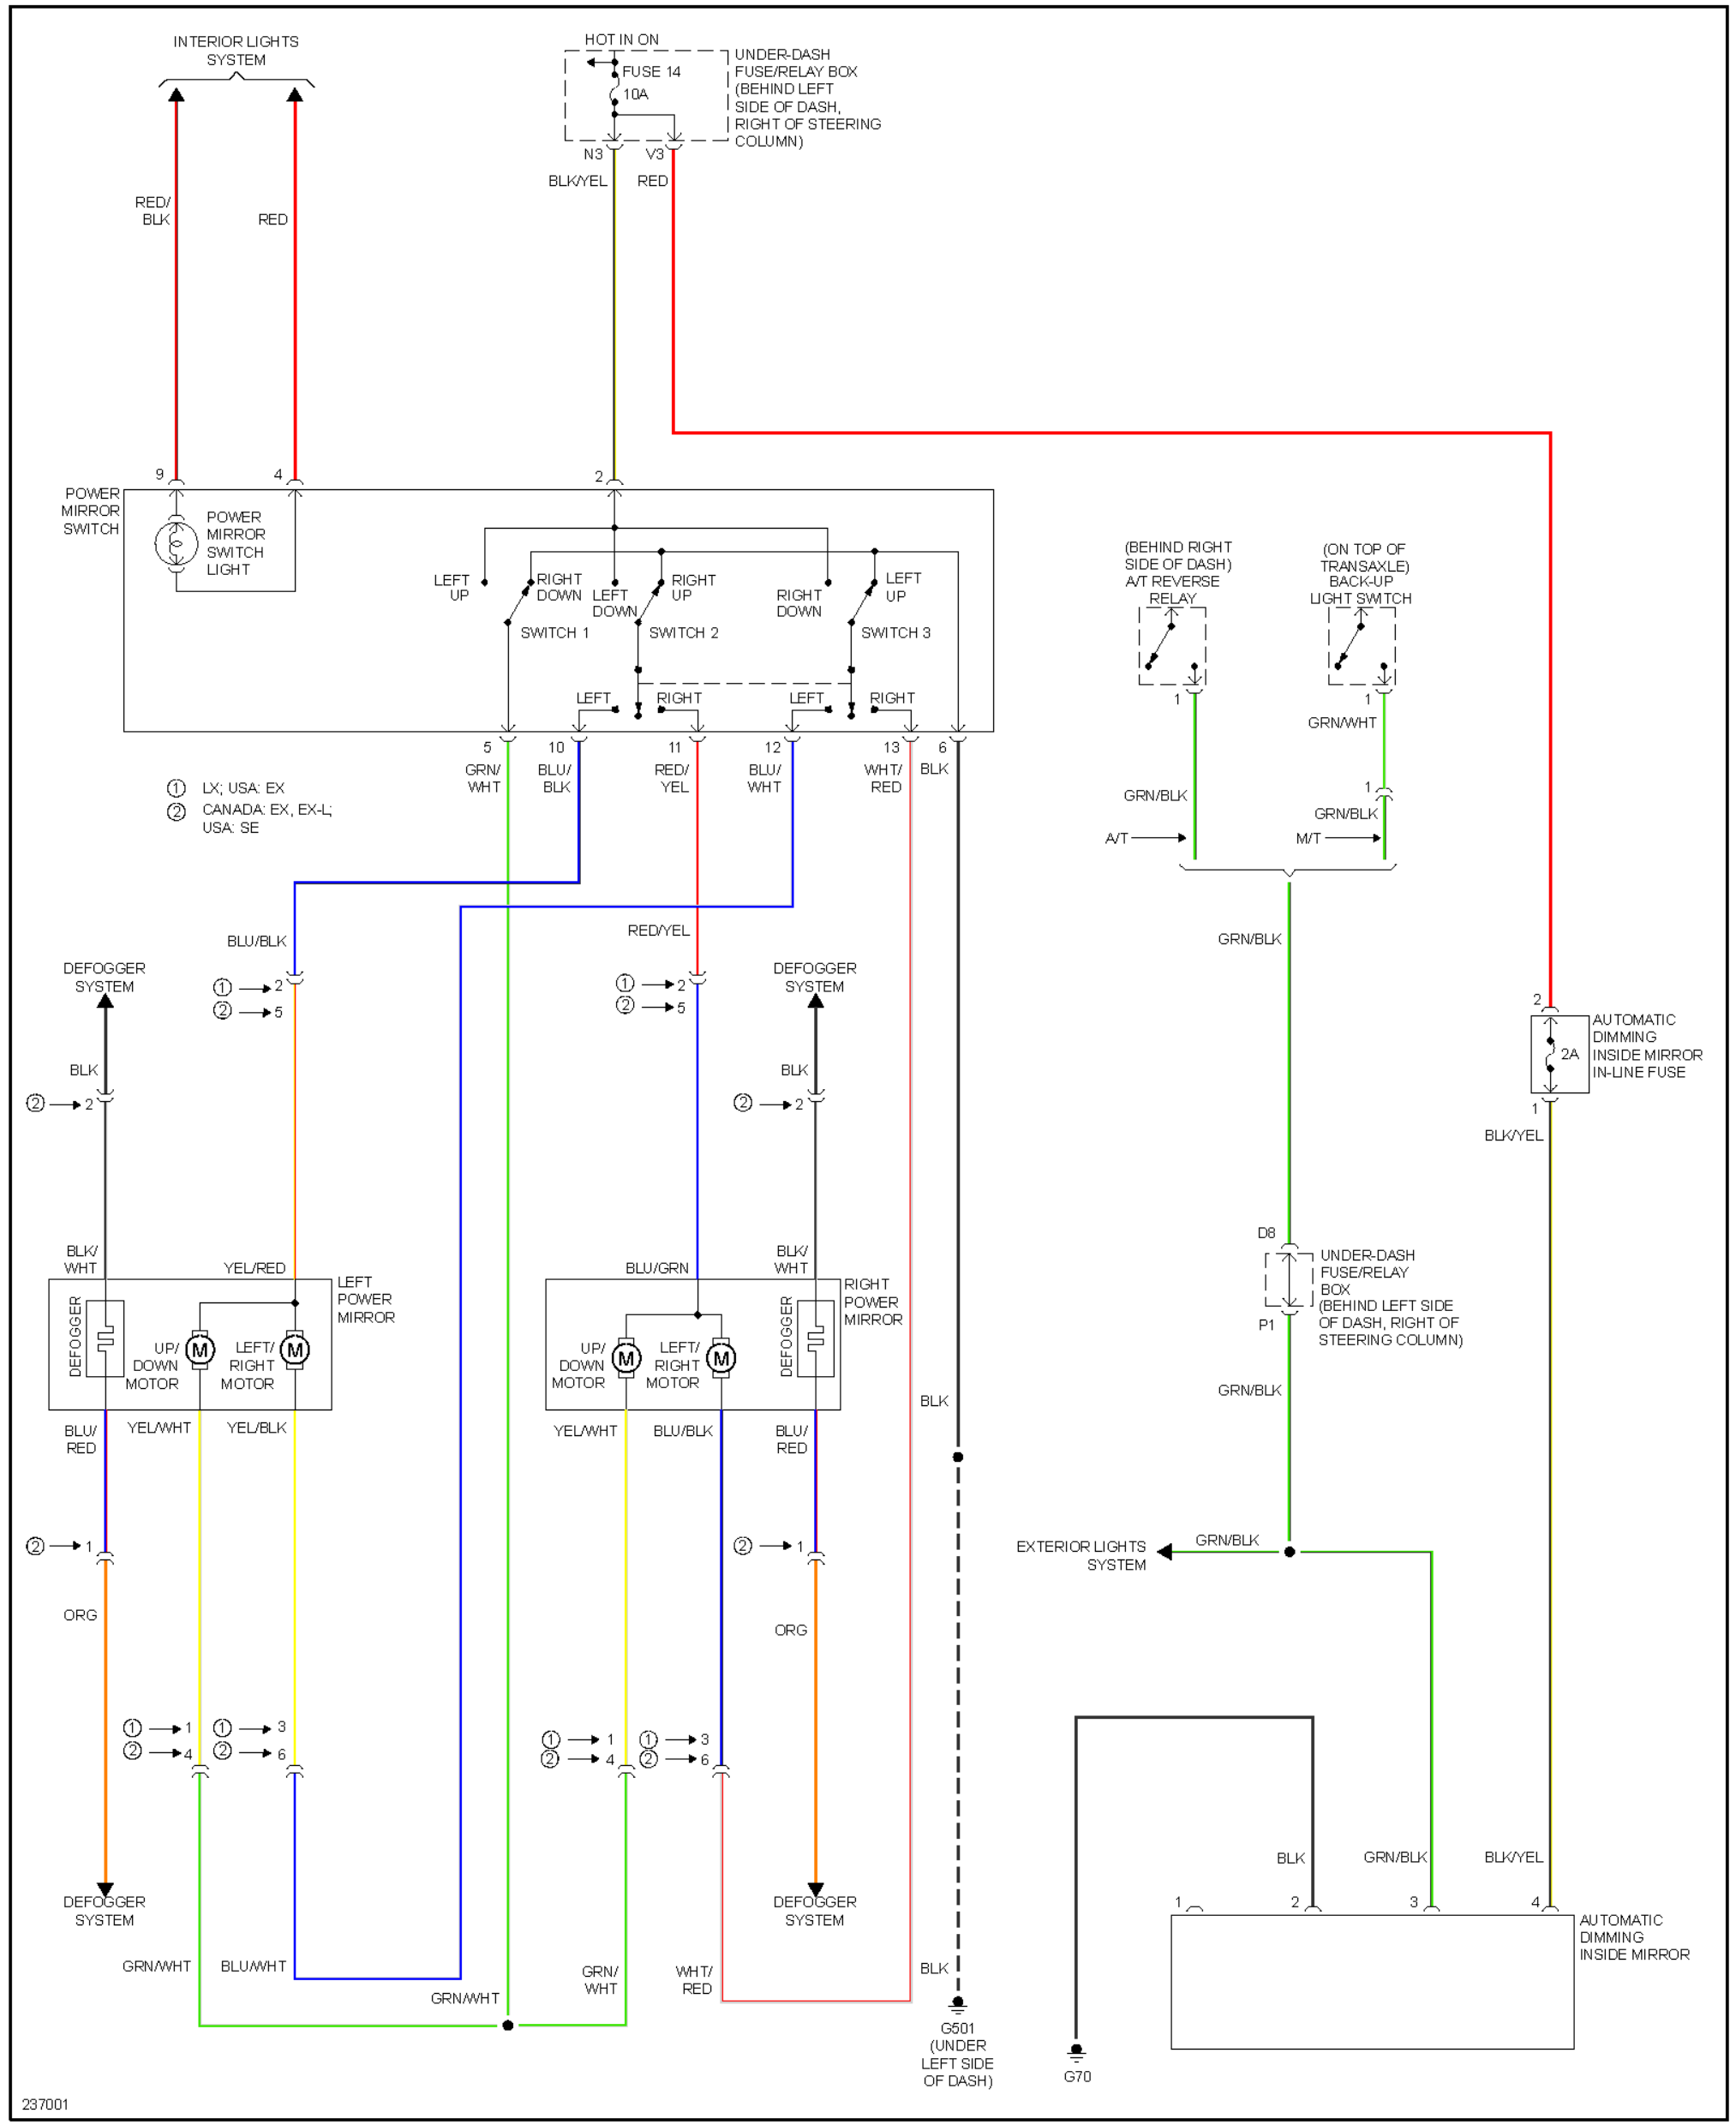 right (passanger) door mirror wiring diagram | honda cr-v owners club forums  cr-v owners club